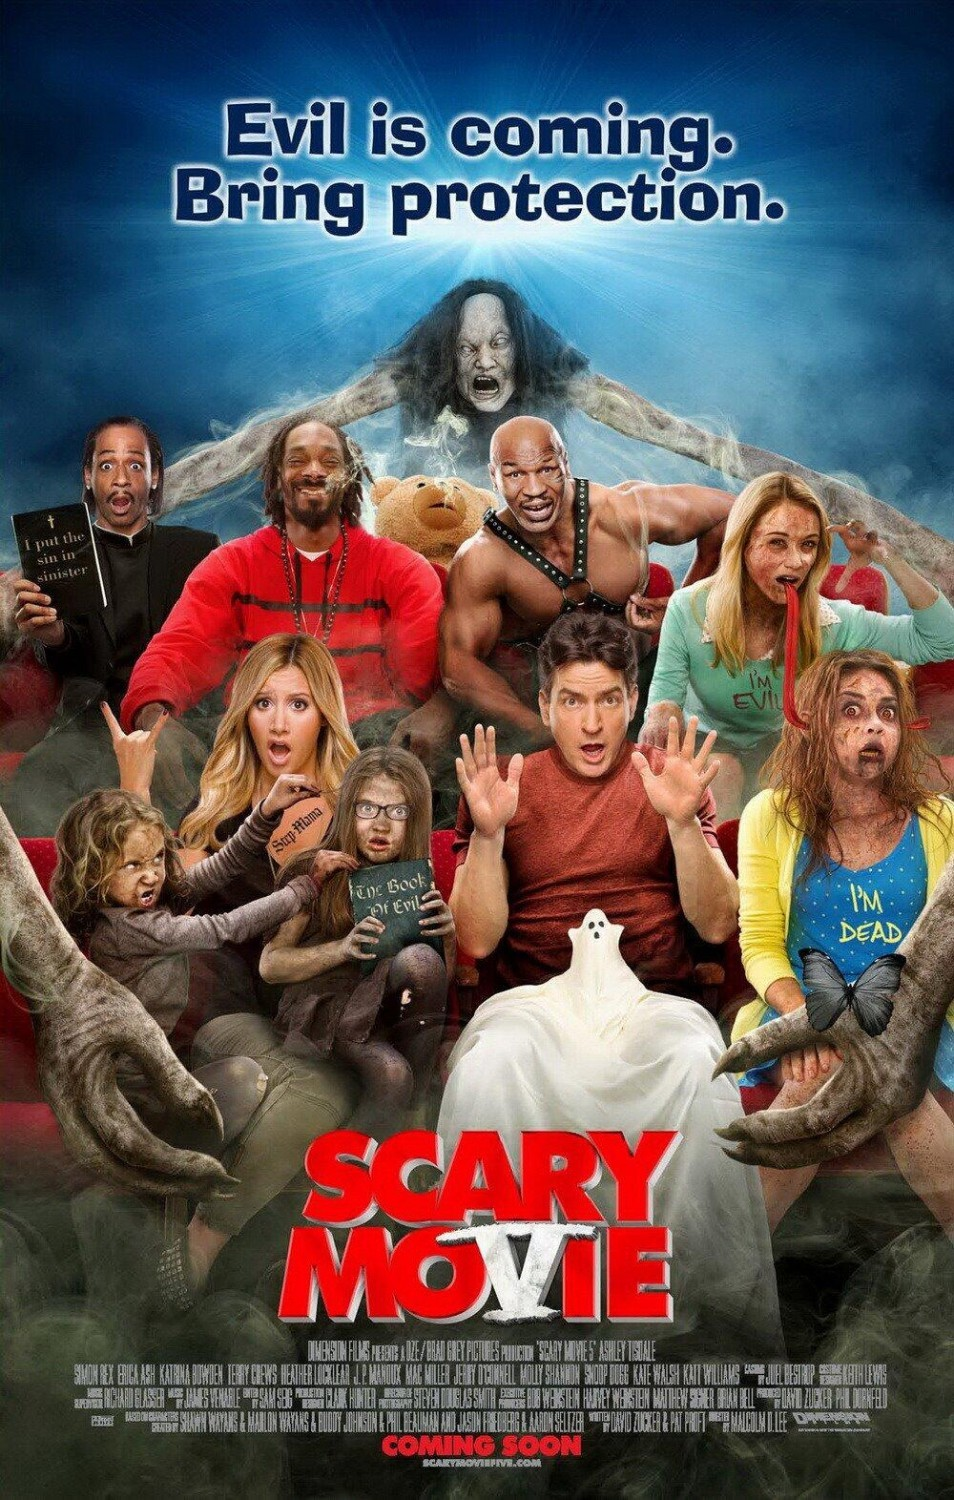 Scary movie 5 die moviepedia filme trailer stars kritiken